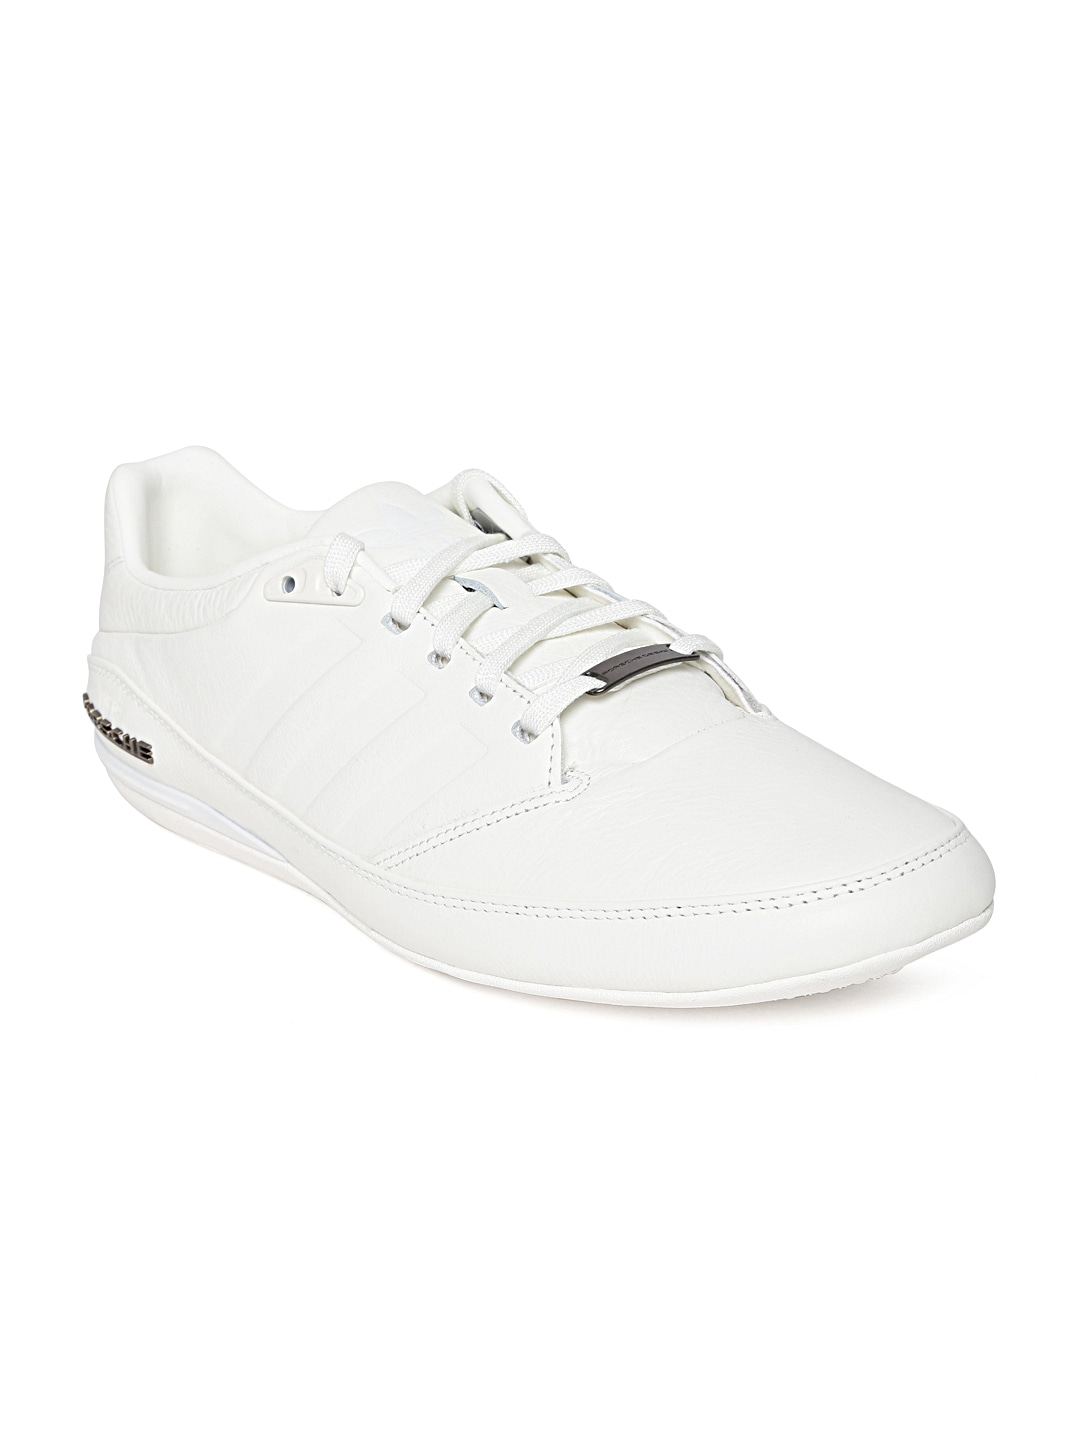 premium selection 354a6 42332 Adidas originals m20587 Men Off White Porsche Typ 64 20 Leather Casual  Shoes- Price in India